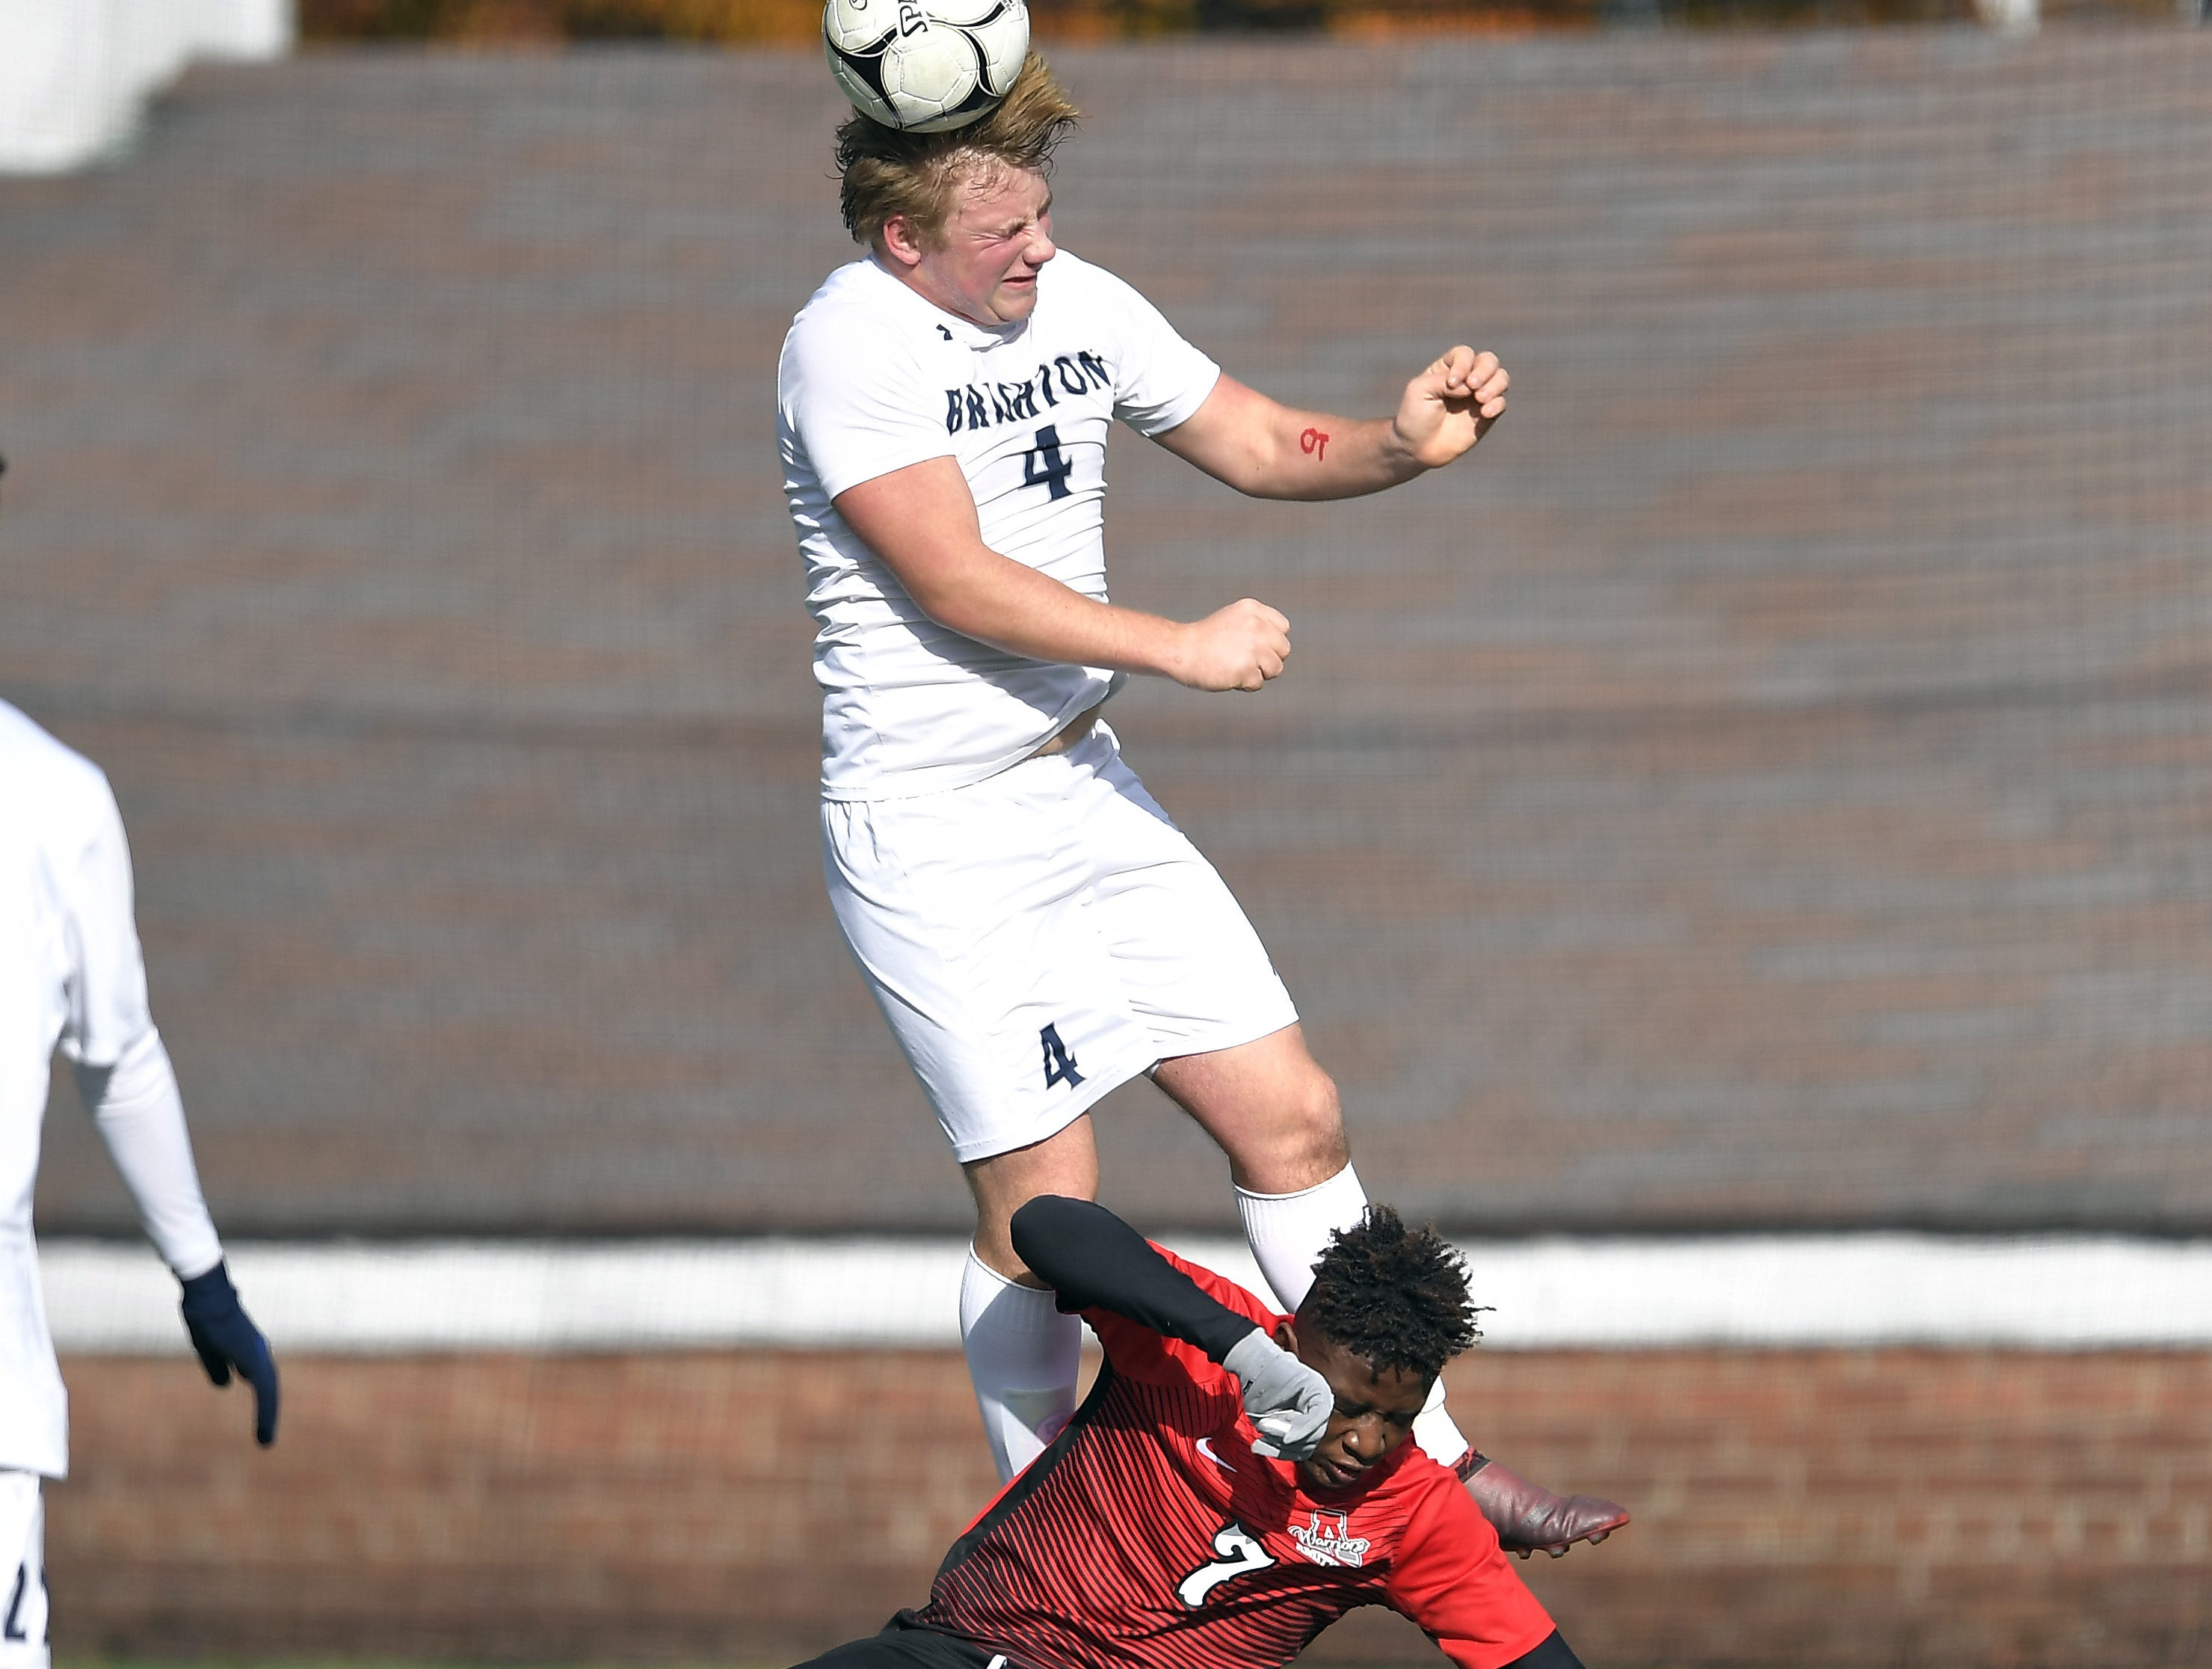 Brighton's Lyosha Georas, top, wins a header over Amityville's Kymani Hines during a Class A semifinal at the NYSPHSAA Boys Soccer Championships in Newburgh, N.Y., Saturday, Nov. 10, 2018.